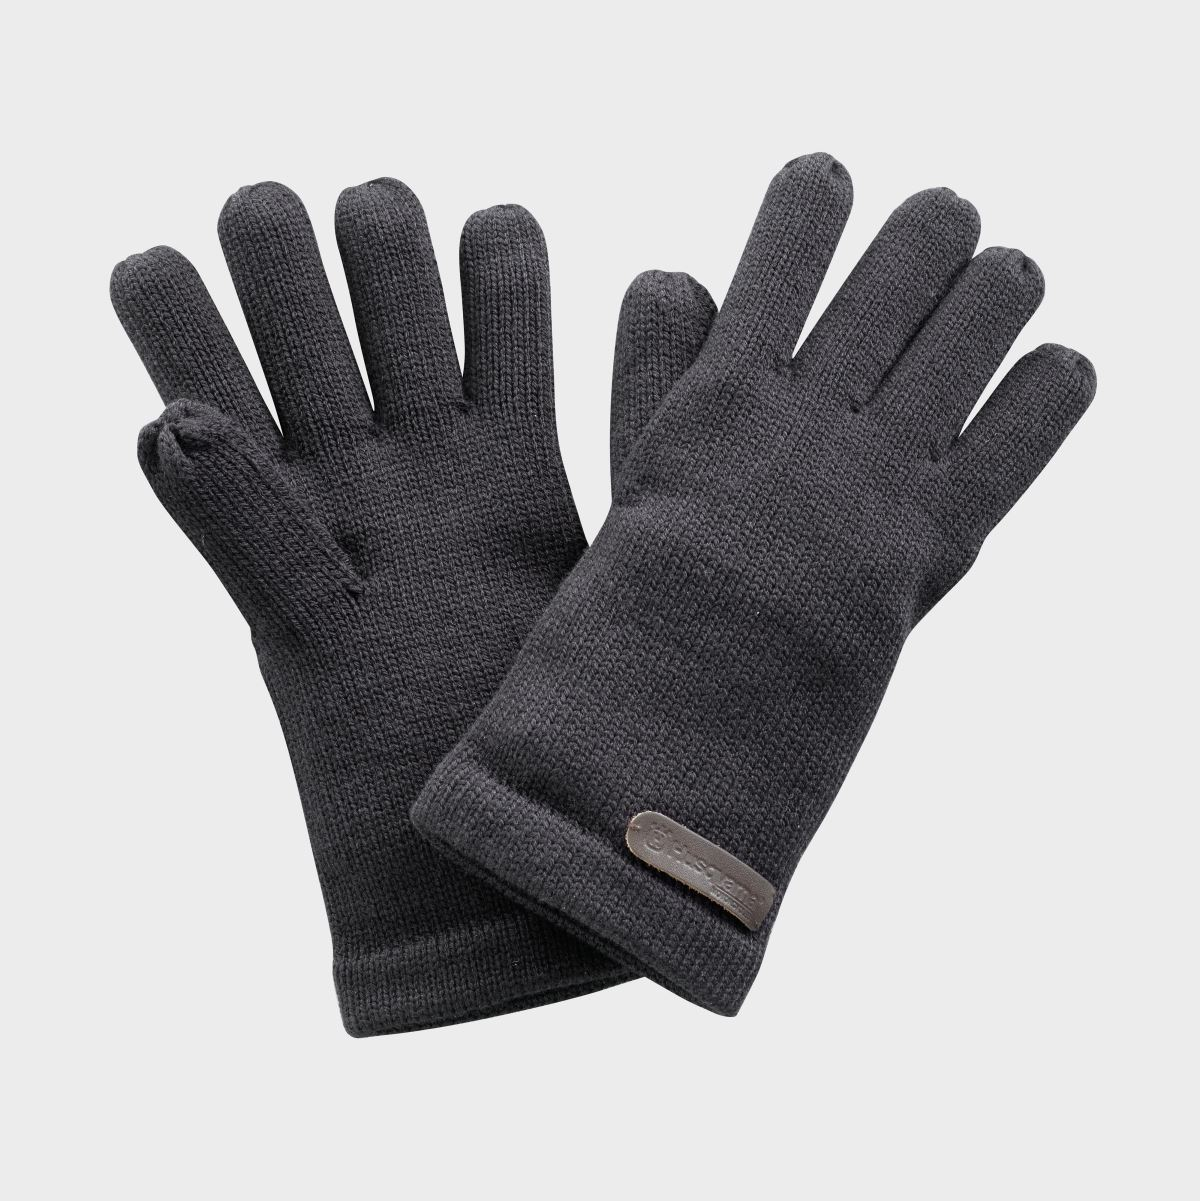 KNITTED GLOVES - CASUAL CLOTHING COLLECTION 2020